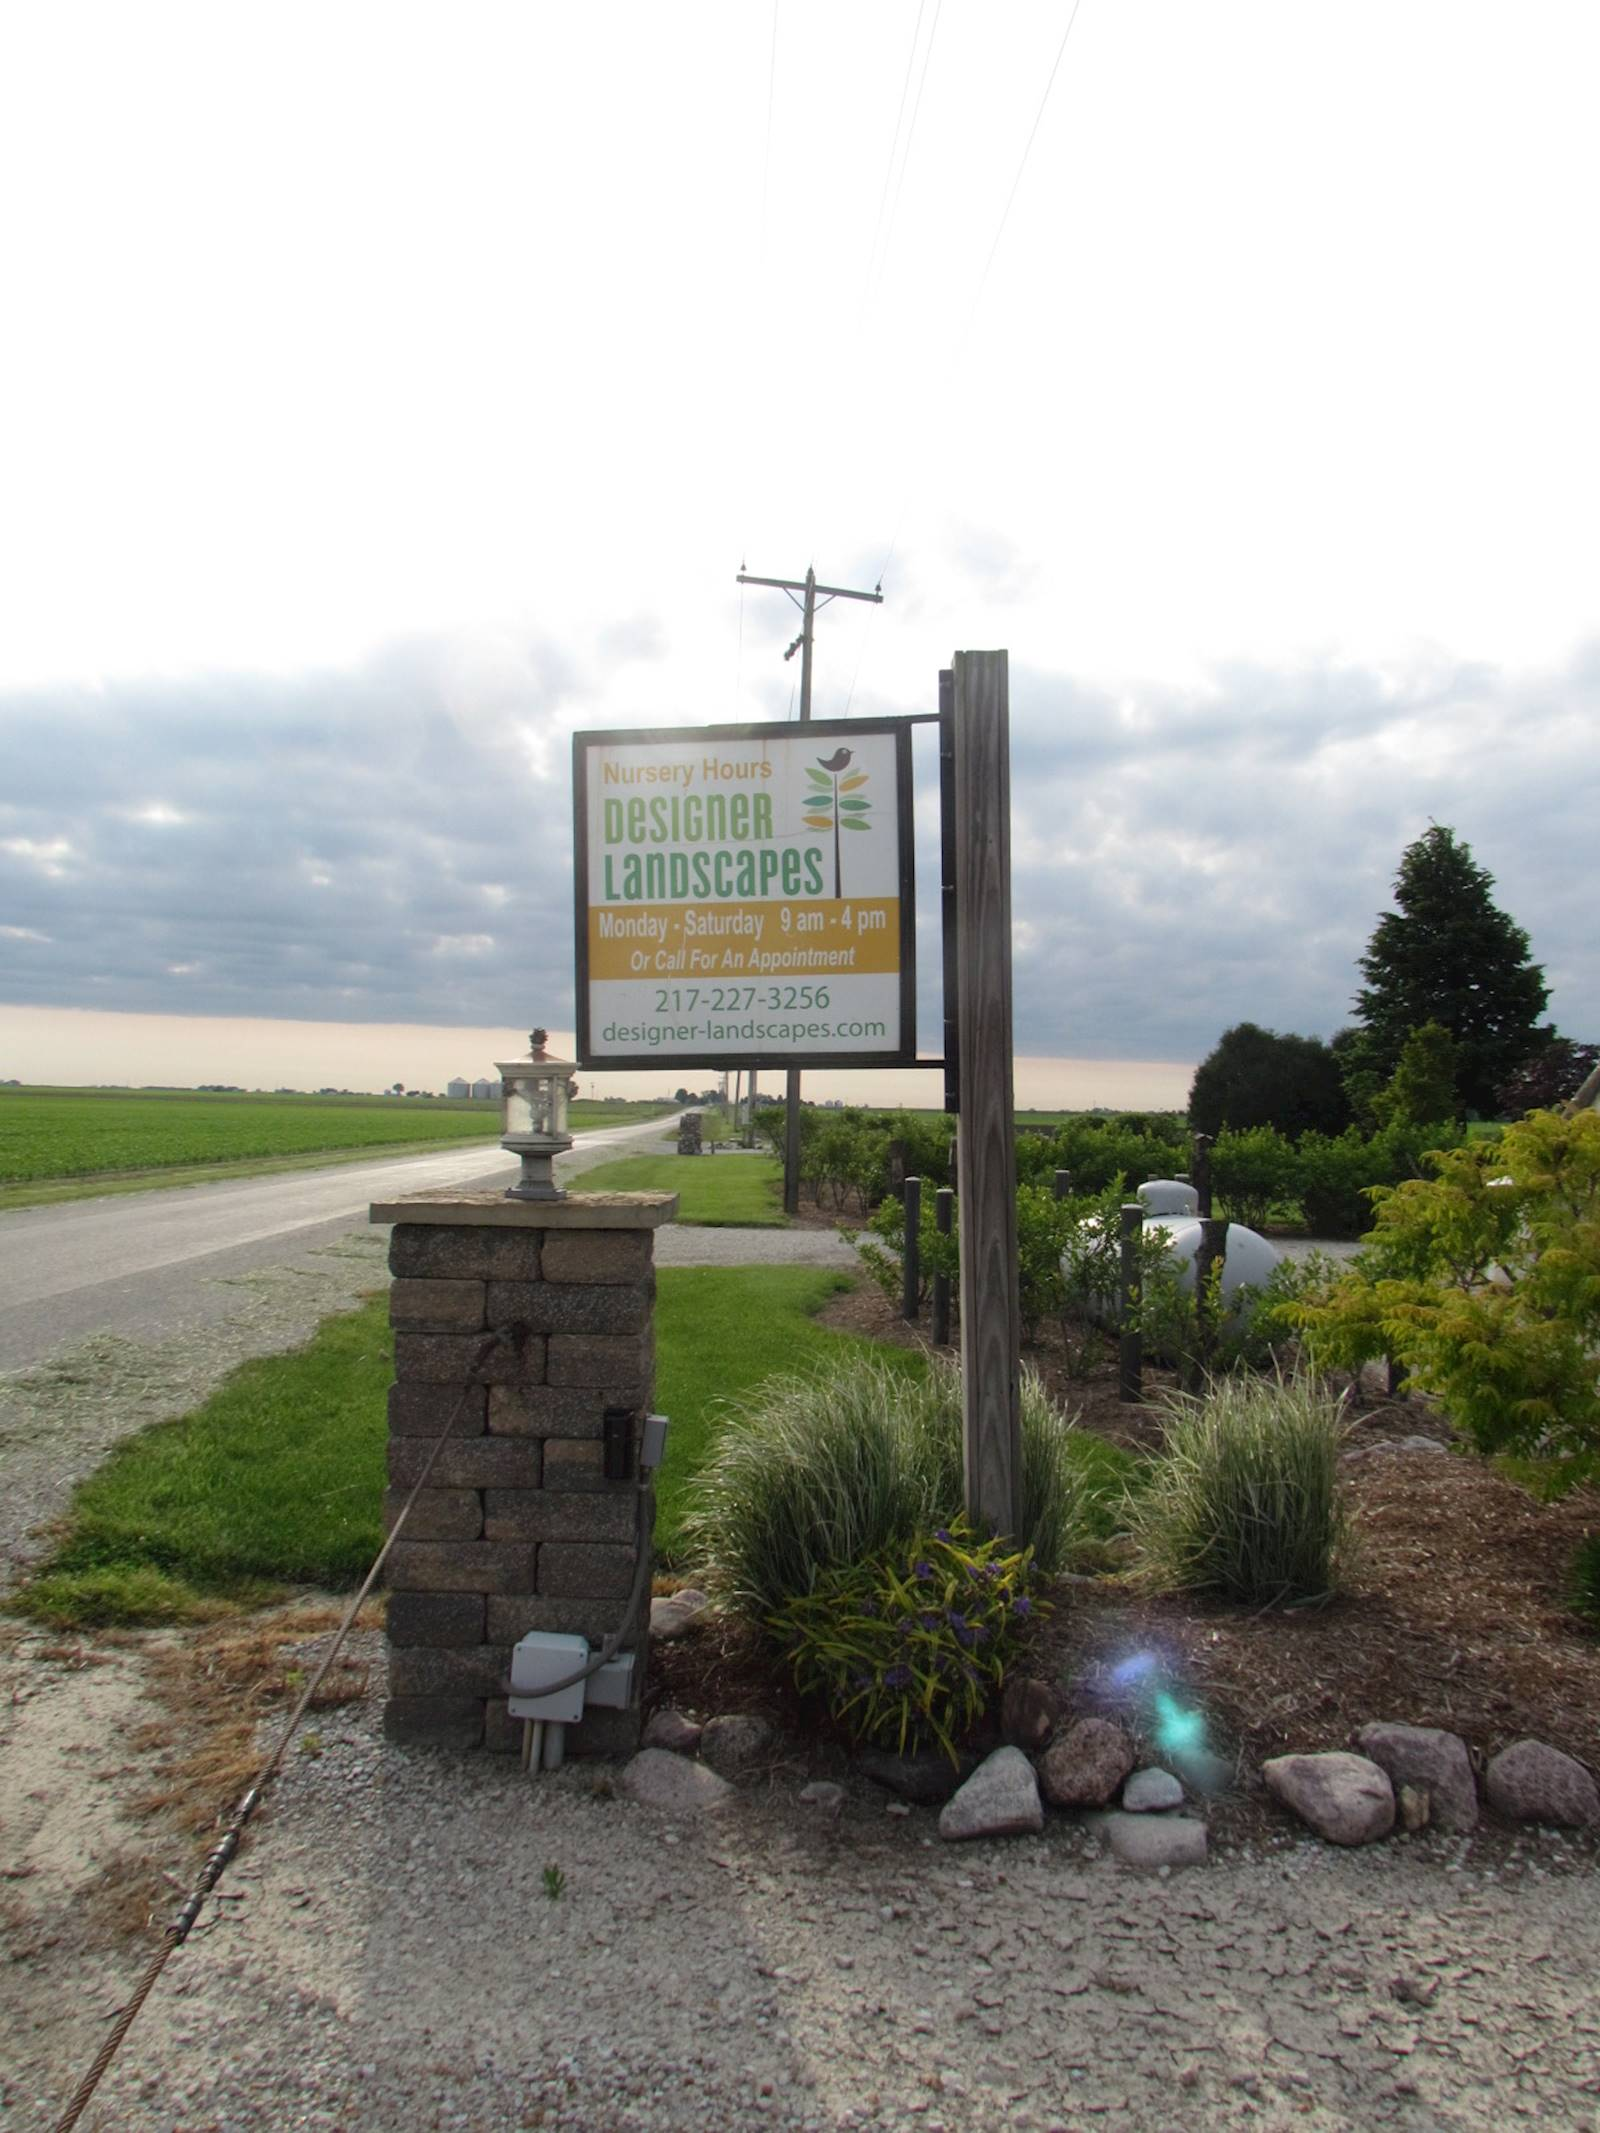 DLI's nursery is located in Farmersville